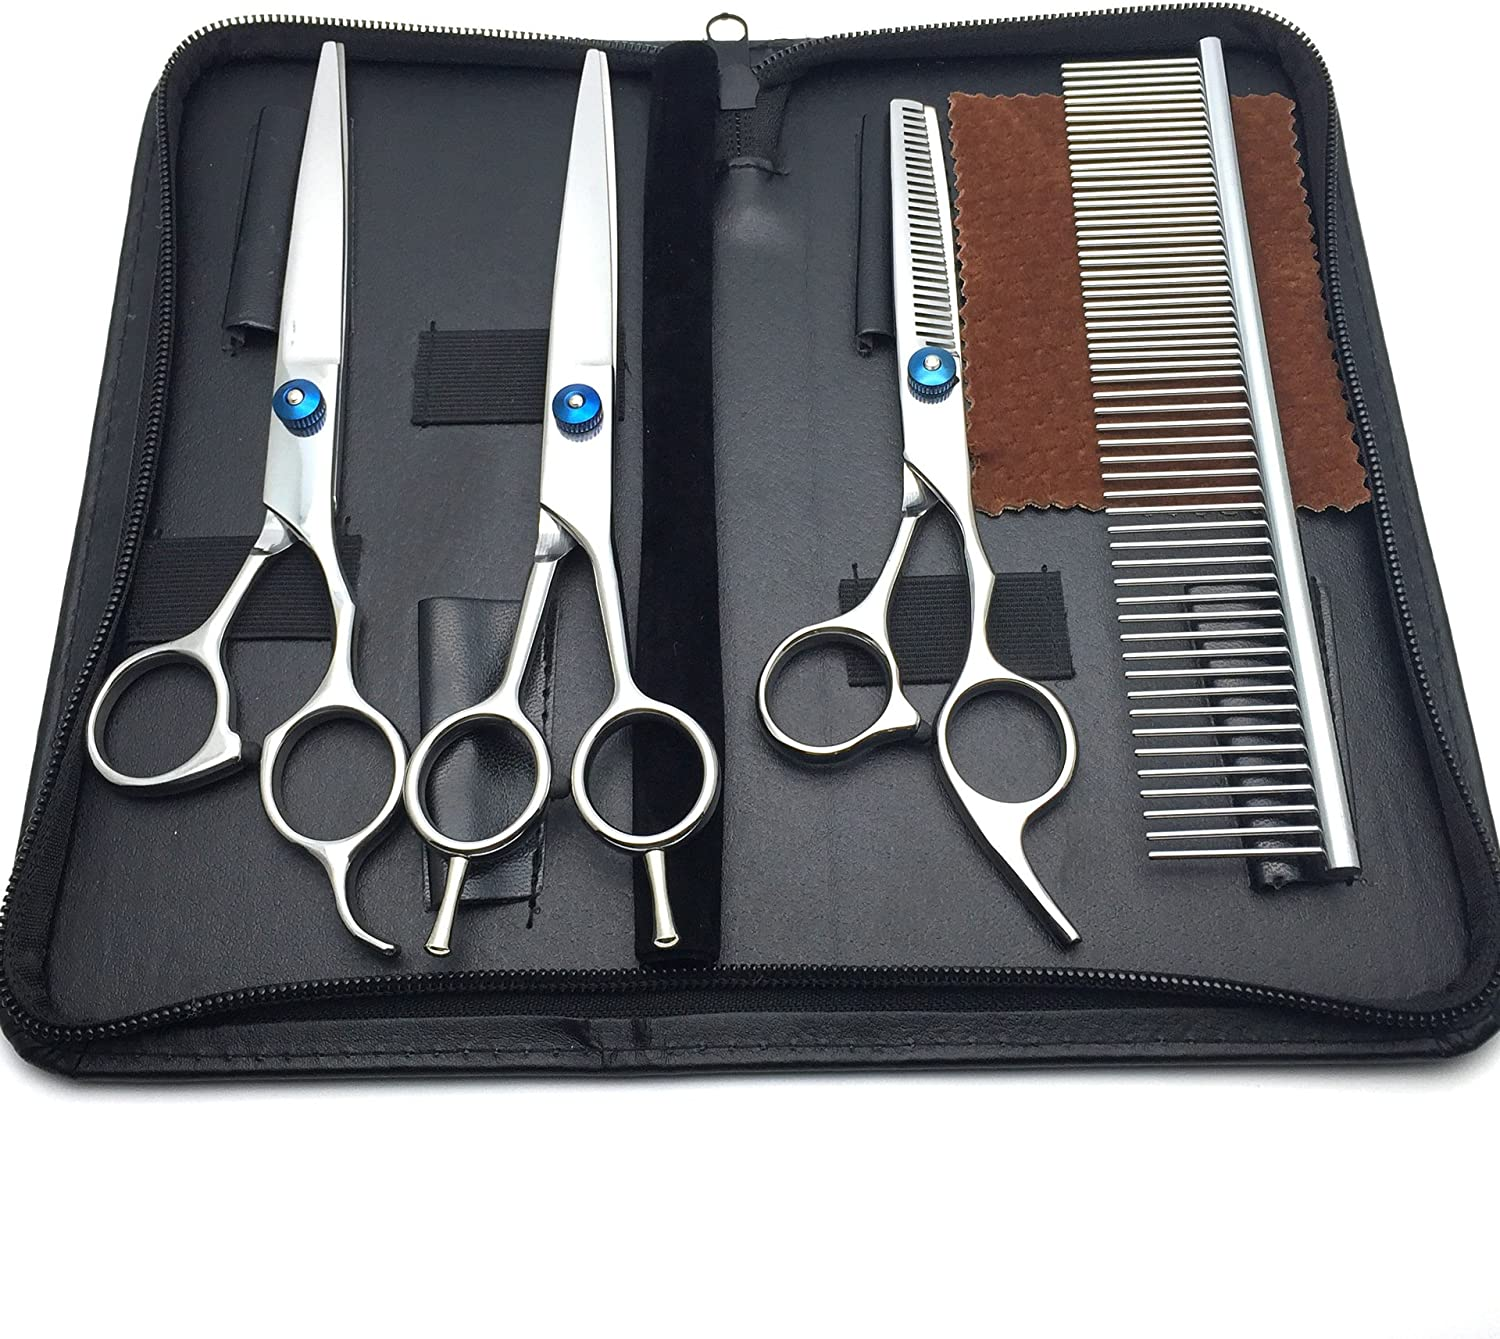 POPZone Professional 4 pieces Pet Hair Grooming Scissors Set  Thinning Shear & 7  inches Straight  Edge Shears & Curved Shears & Grooming Comb  Sharp and Strong Stainless Steel Blade